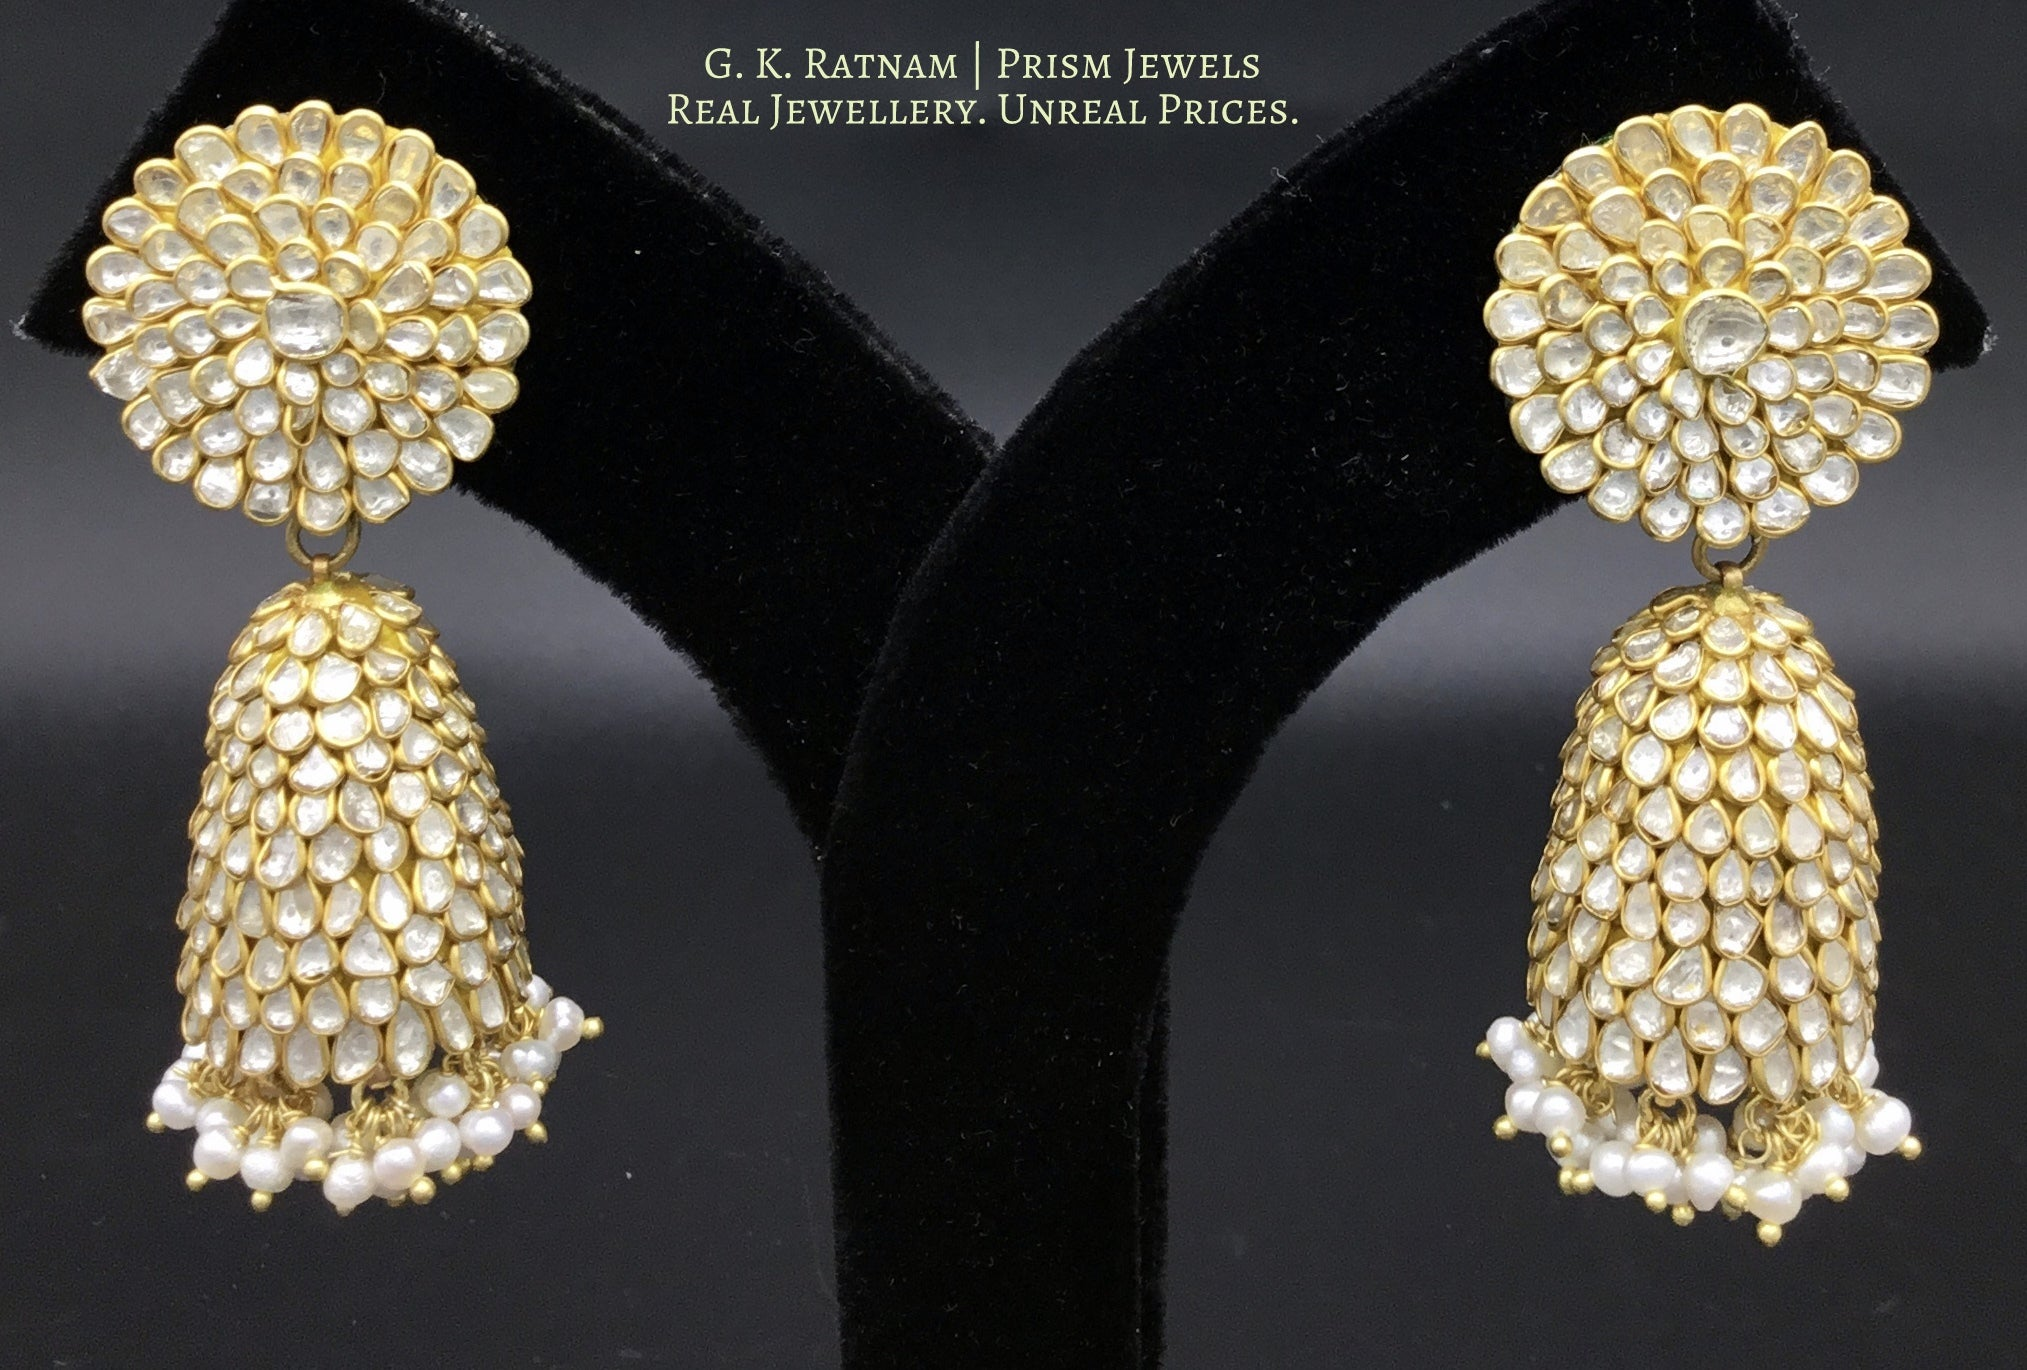 23k Gold and Diamond Polki Pacchi Jhumki Earring Pair with Pearls